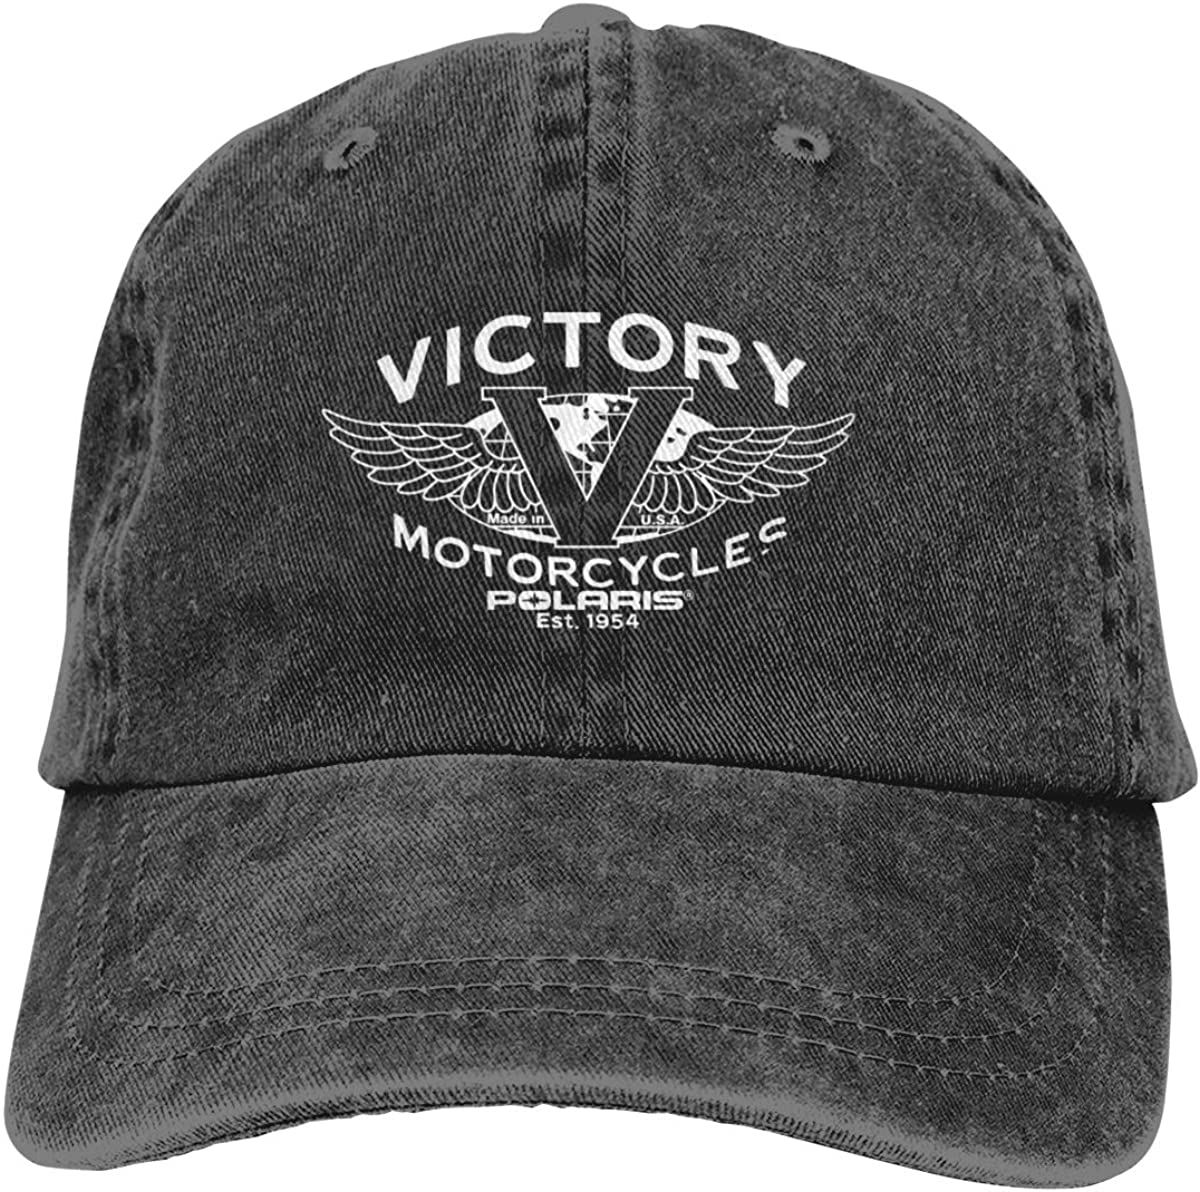 Yestrong Man /& Female Unisex 3D Print with Victory Motorcycles Polaris Classic Denim Hat Adjustable